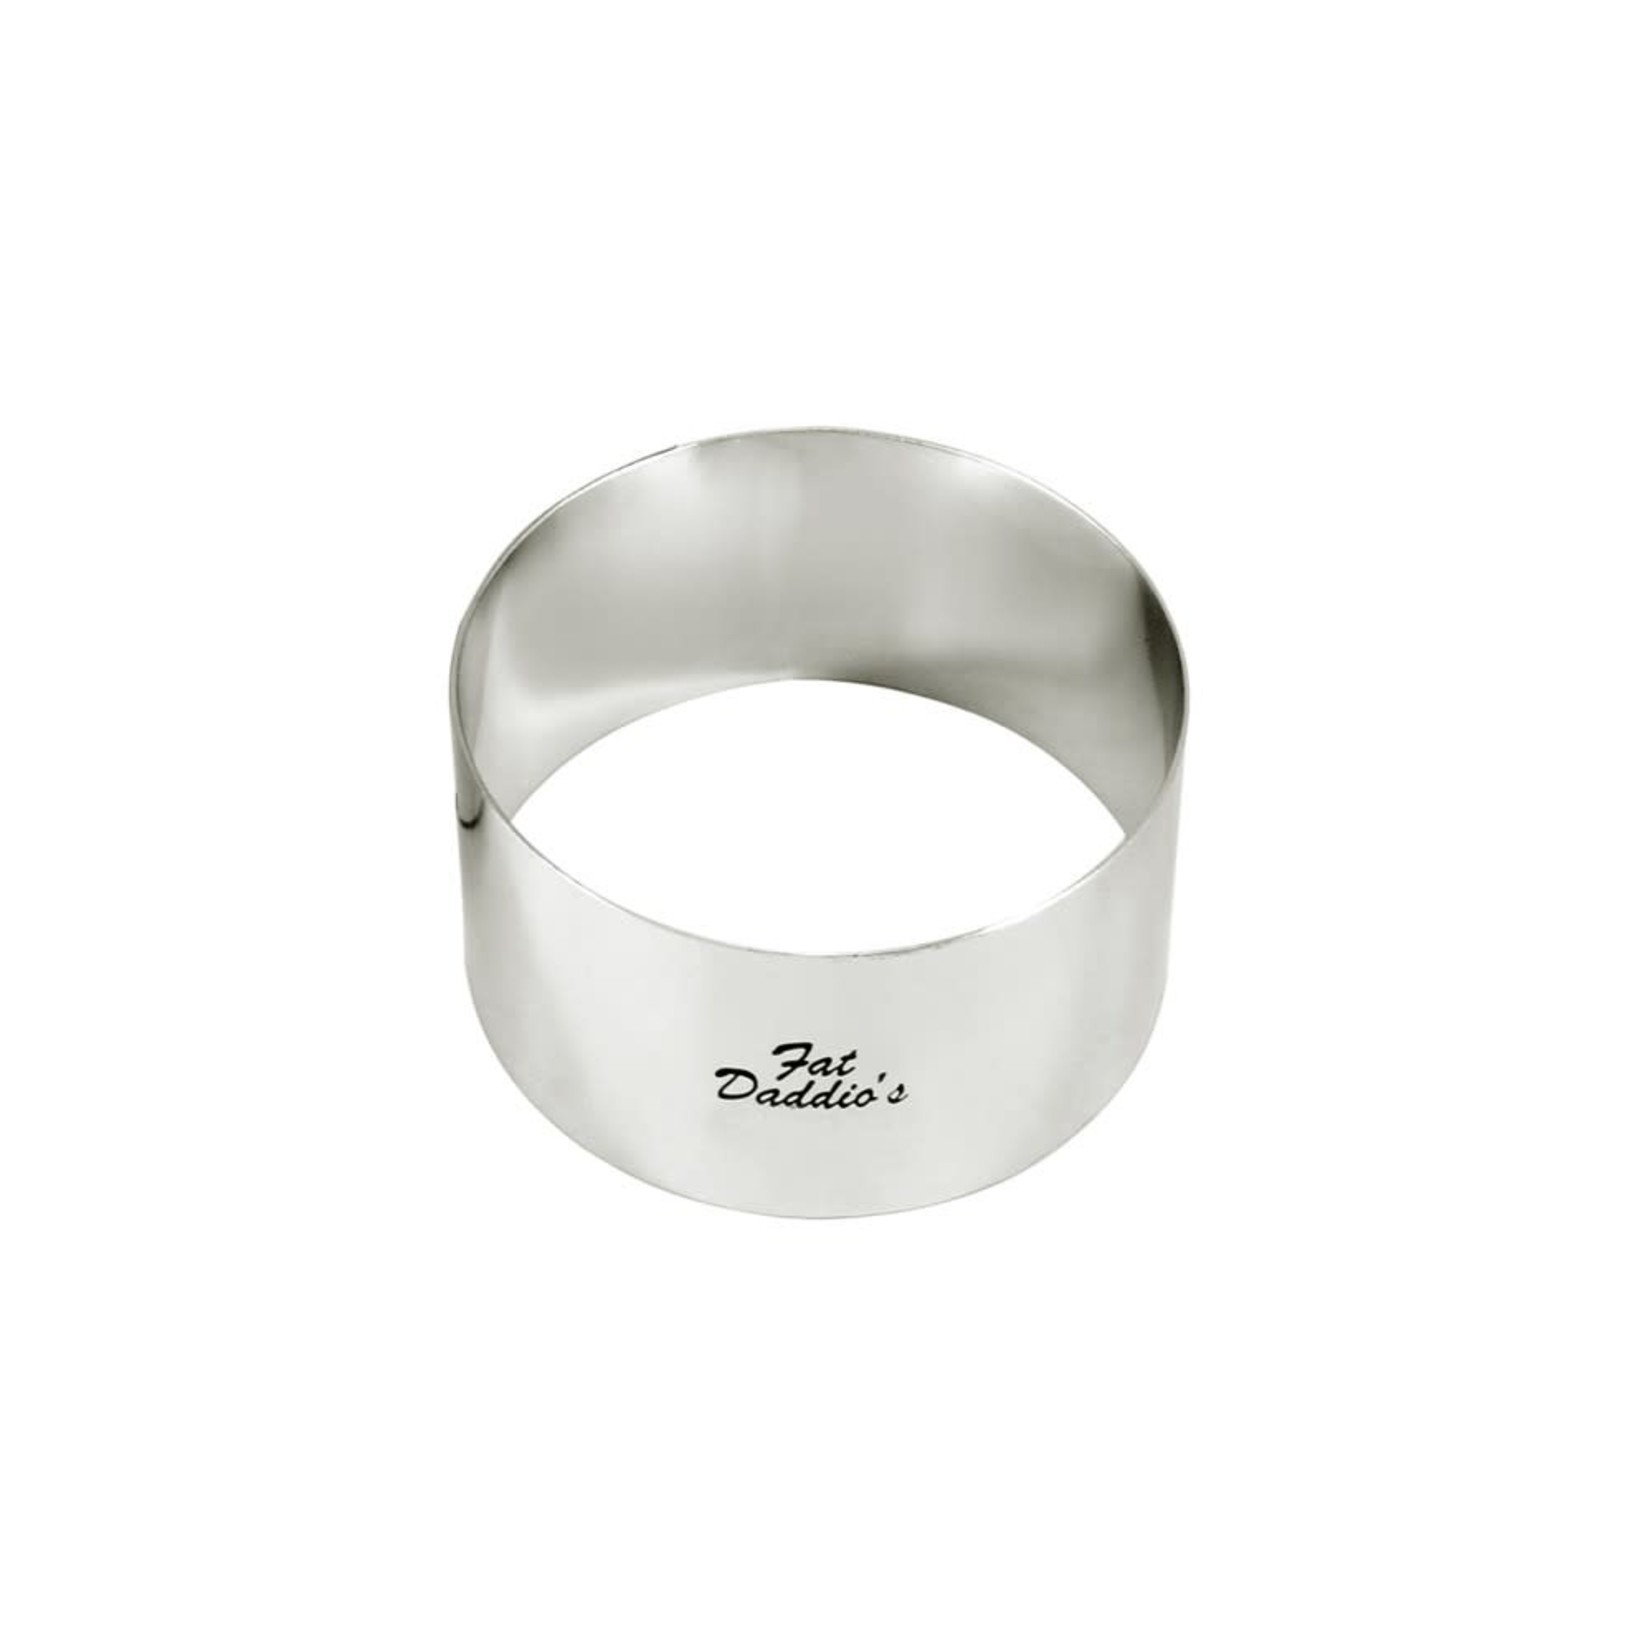 """Fat Daddios Fat Daddios - Ring Stainless Steel - 2 3/4 x 1 3/4"""", SSRD-275175"""